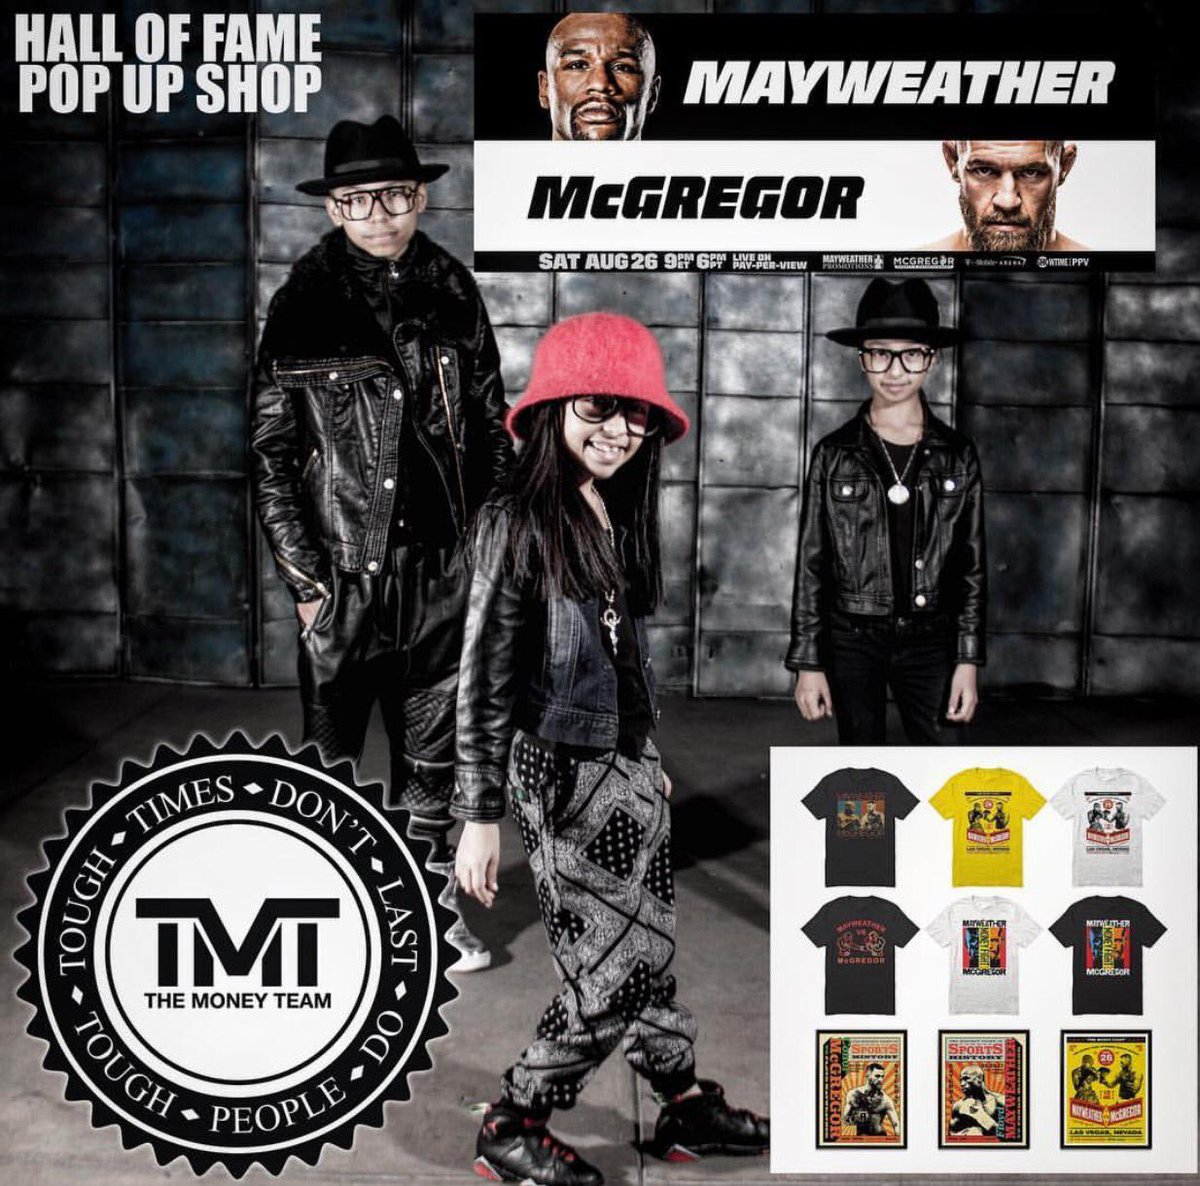 test Twitter Media - Don't miss @CTFBCREW on the turntables today at @HallofFameLTD at the #MayweatherMcGregor pop up shop in #LA. https://t.co/Cm3YMBtlRW